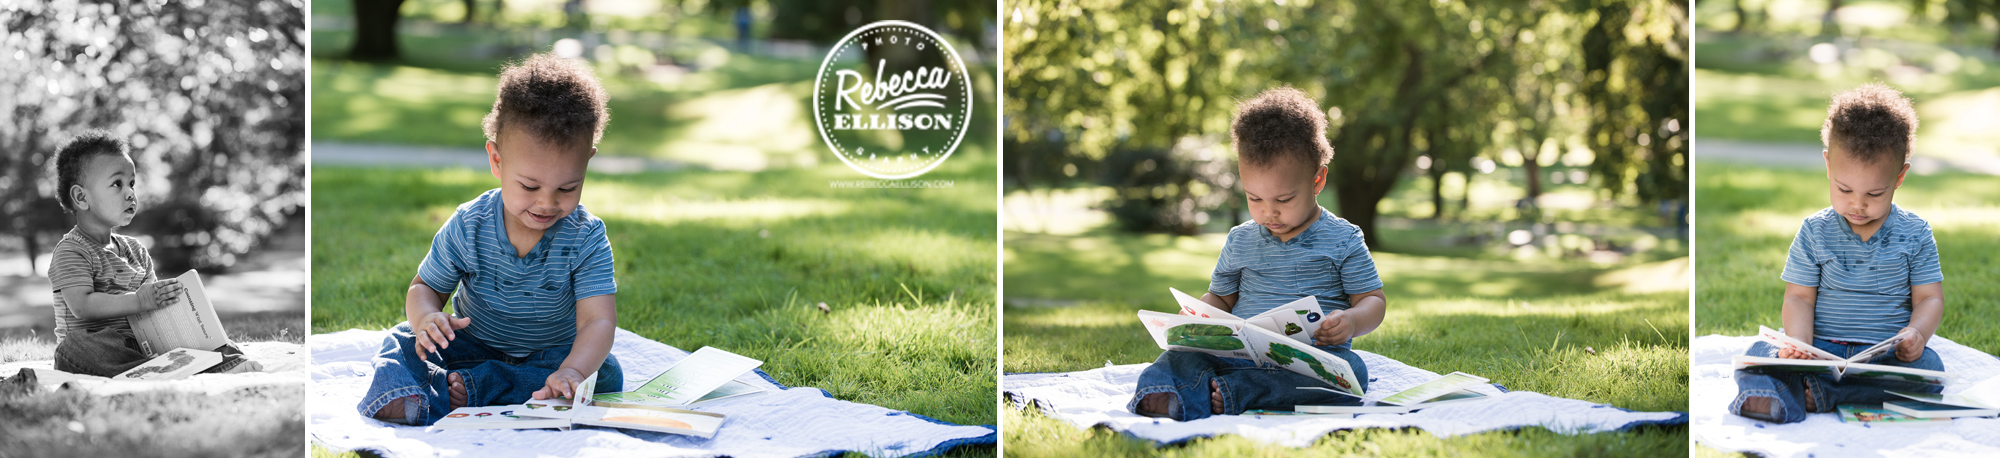 One year old boy looks at a book during an outdoor portrait session by Tacoma Child Photographer Rebecca Ellison